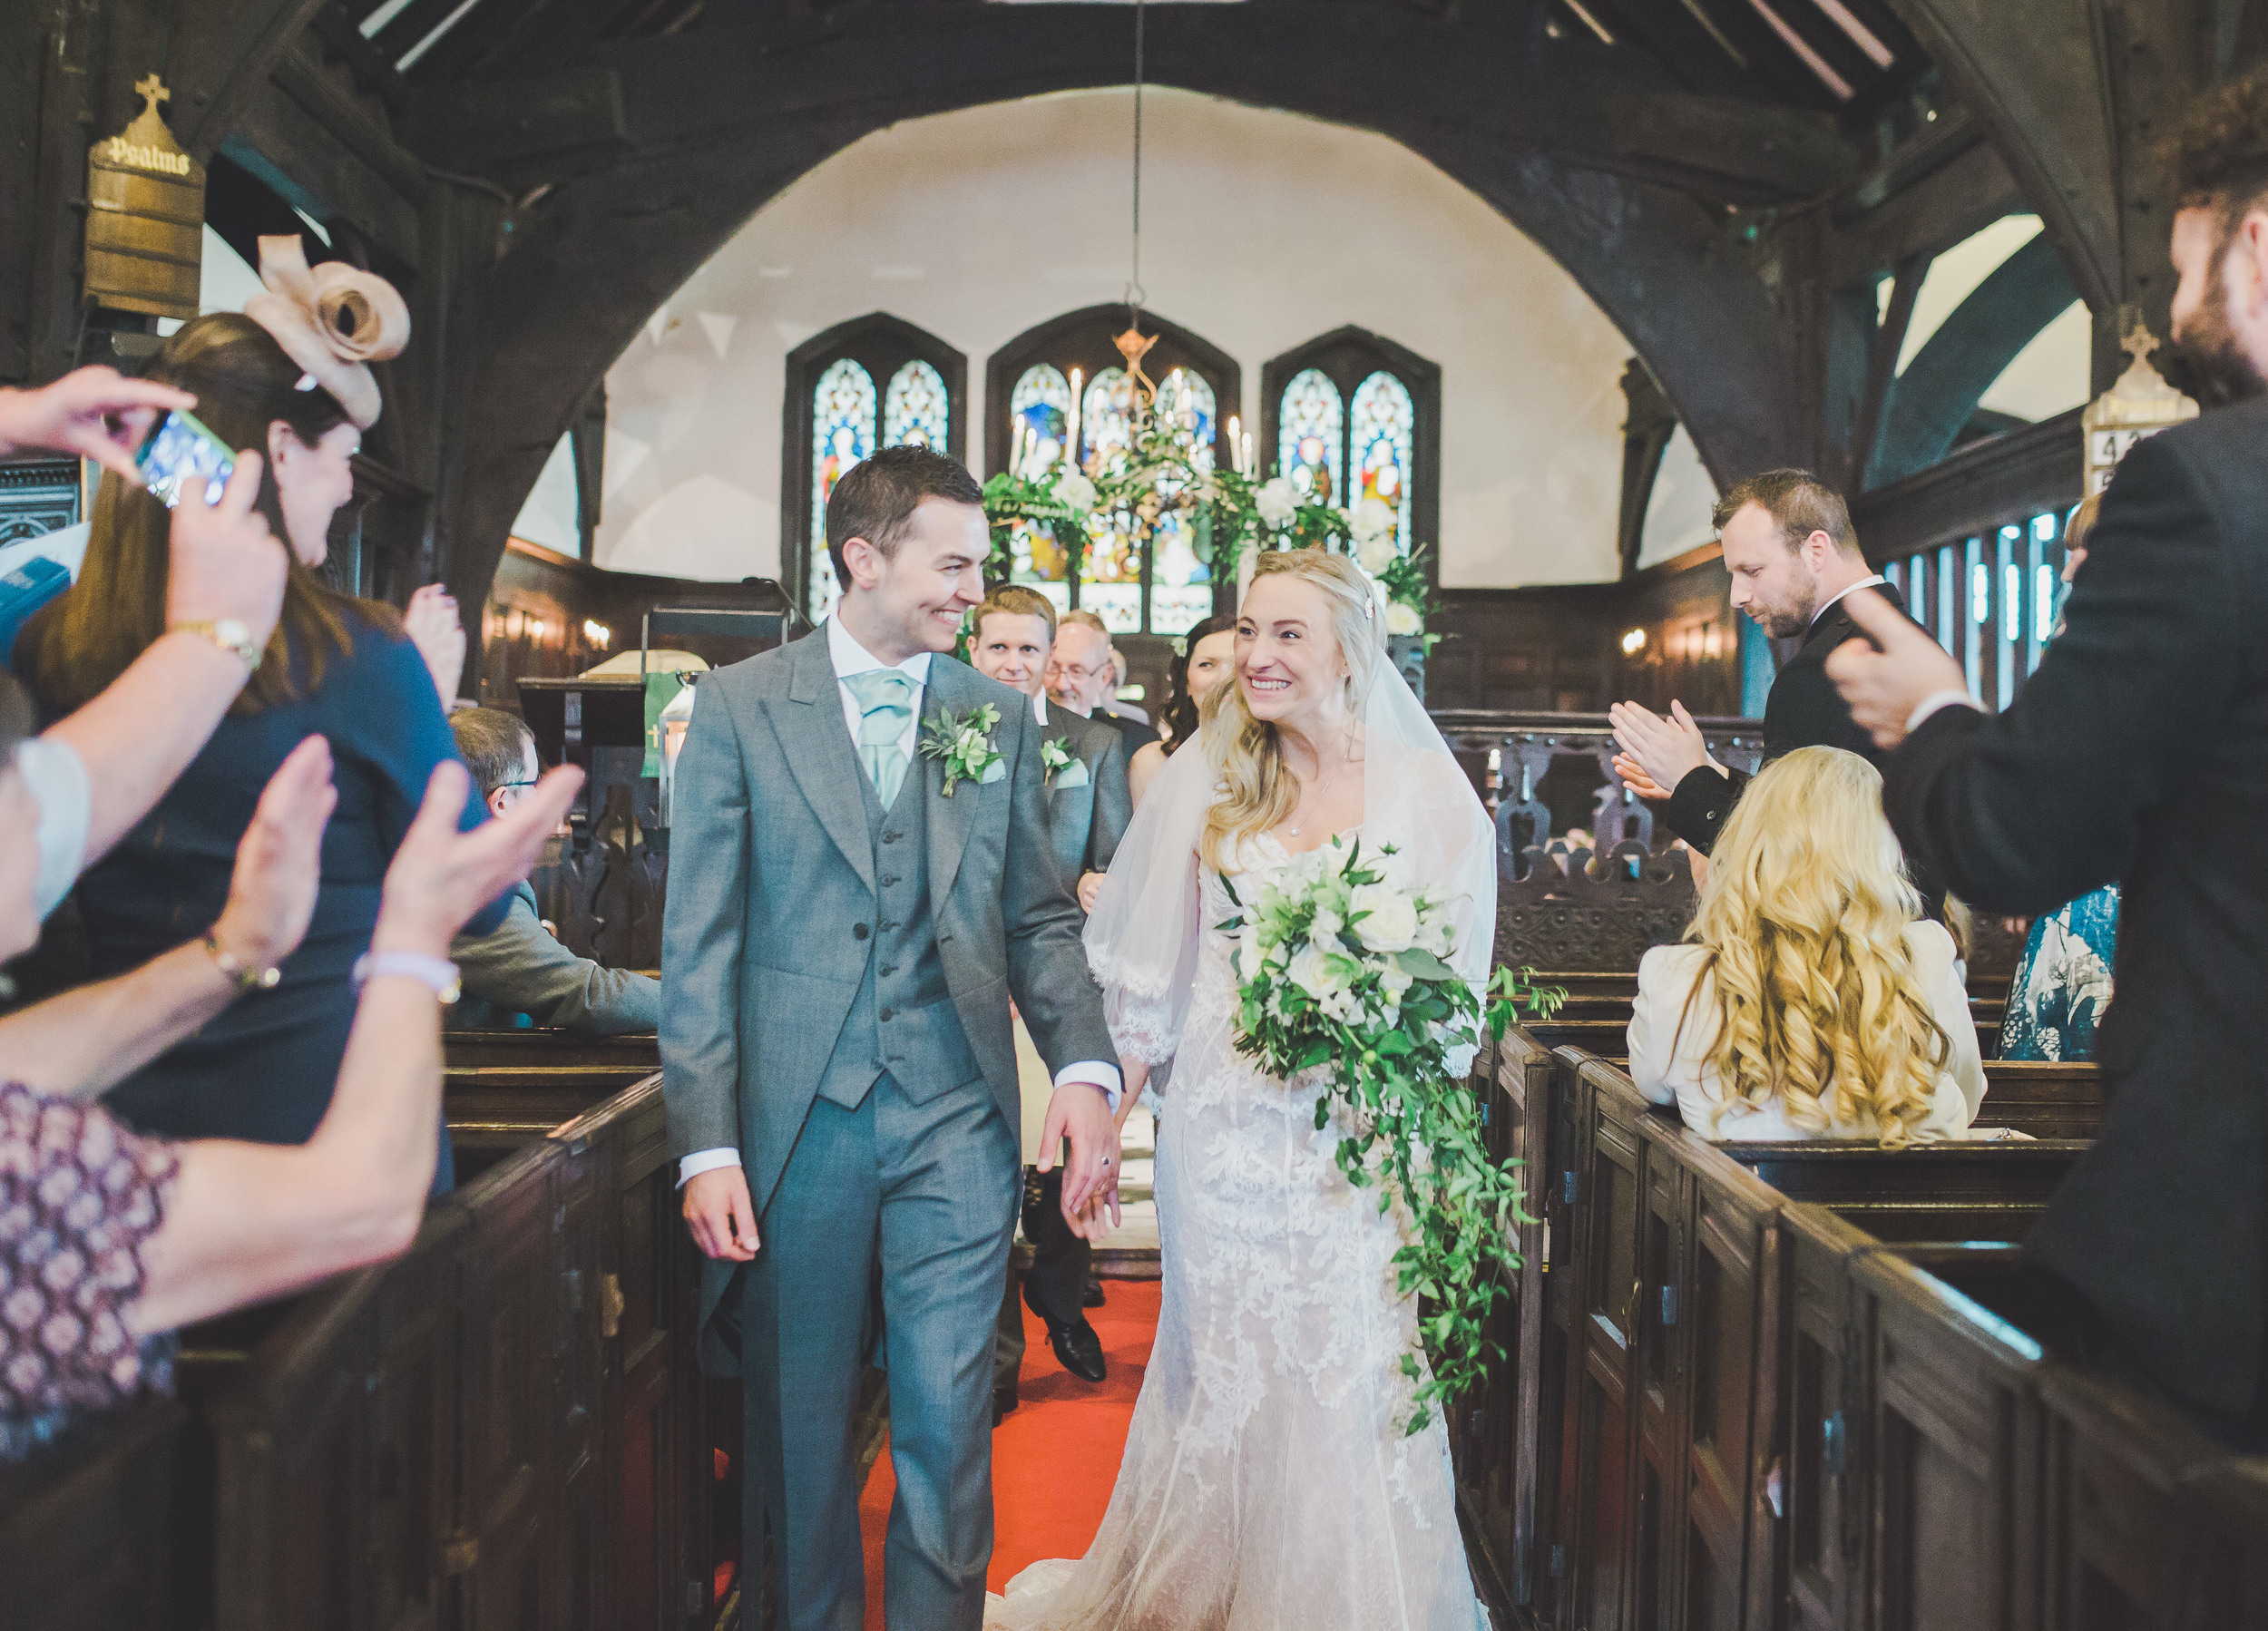 walking down the aisle - Cheshire wedding photography